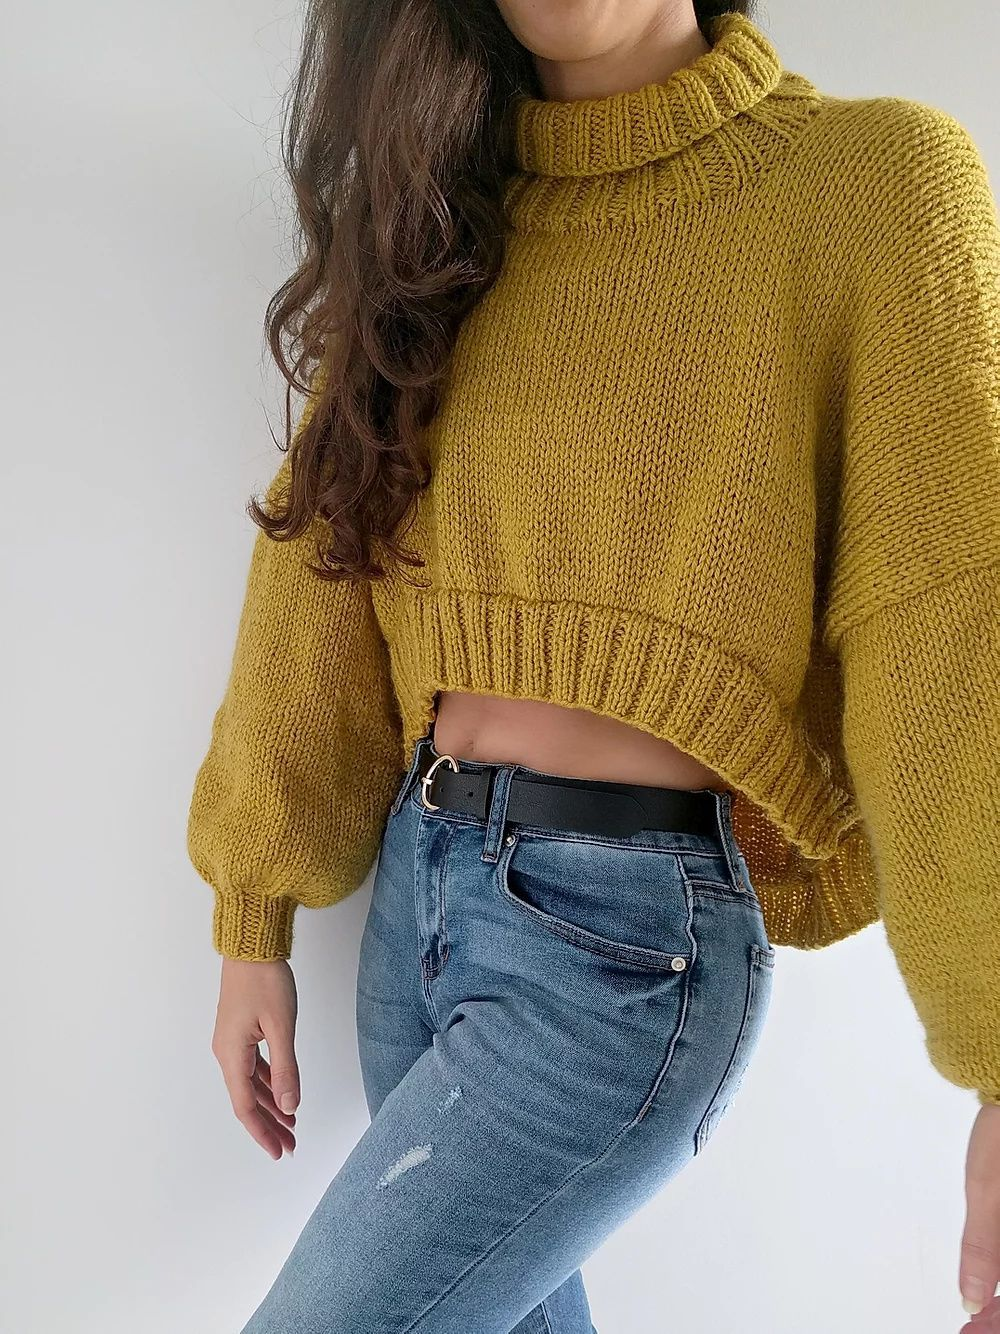 High low sweater cropped pullover knitting pattern in